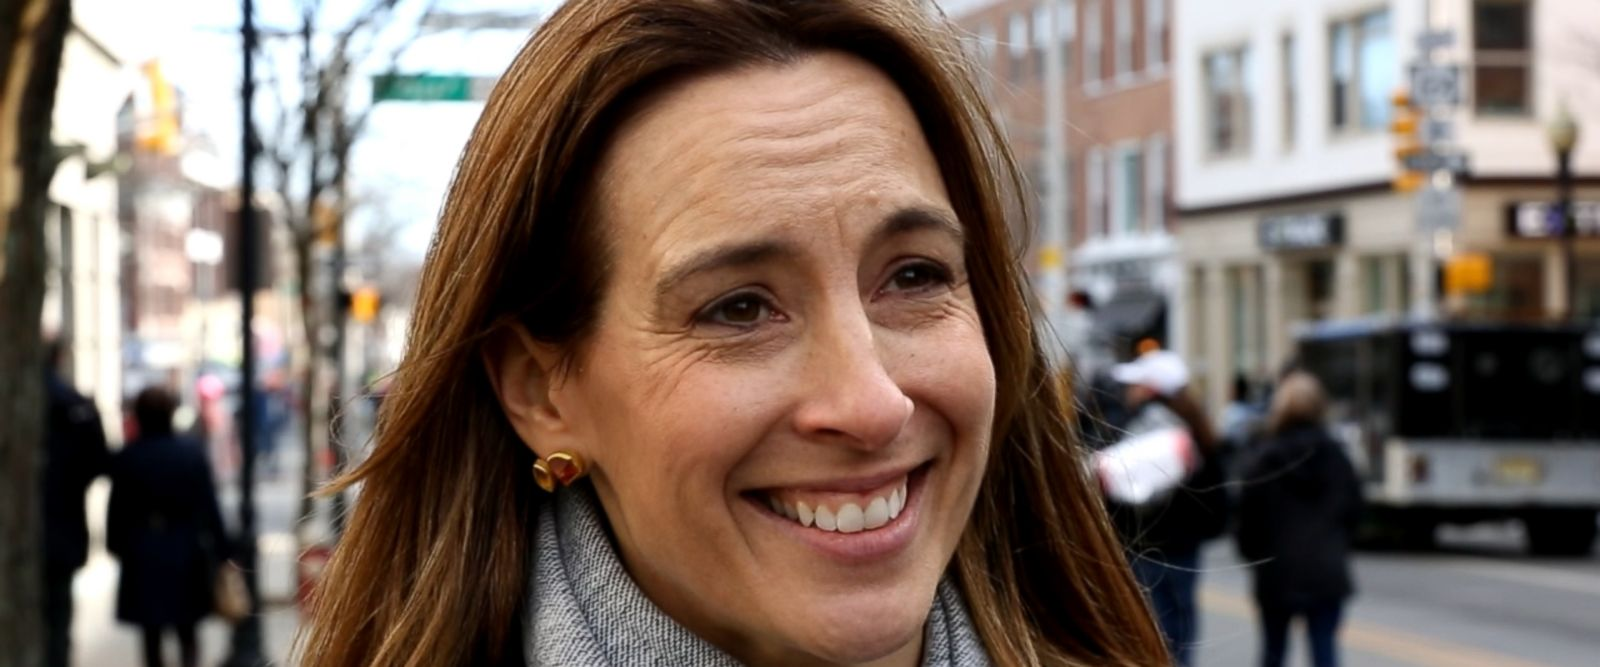 Sherrill, a mother of four, a former pilot and federal prosecutor, is running against a 22-year Republican incumbent in New Jersey's 11th District.